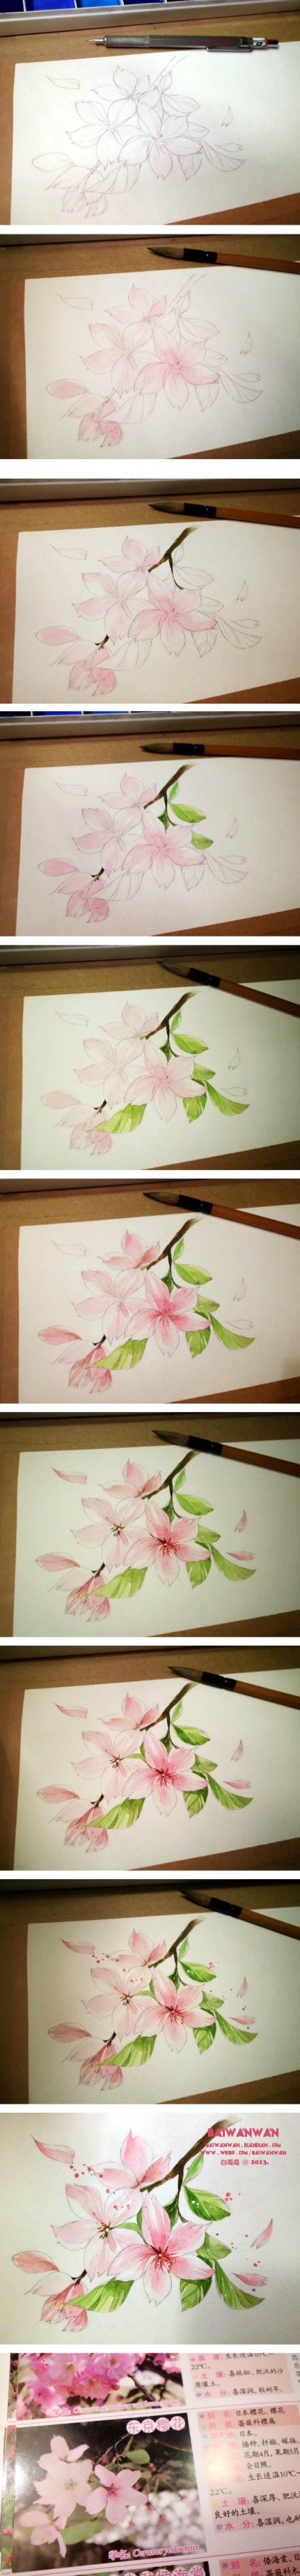 154 best images about step by step watercolor on for How to paint watercolor flowers step by step